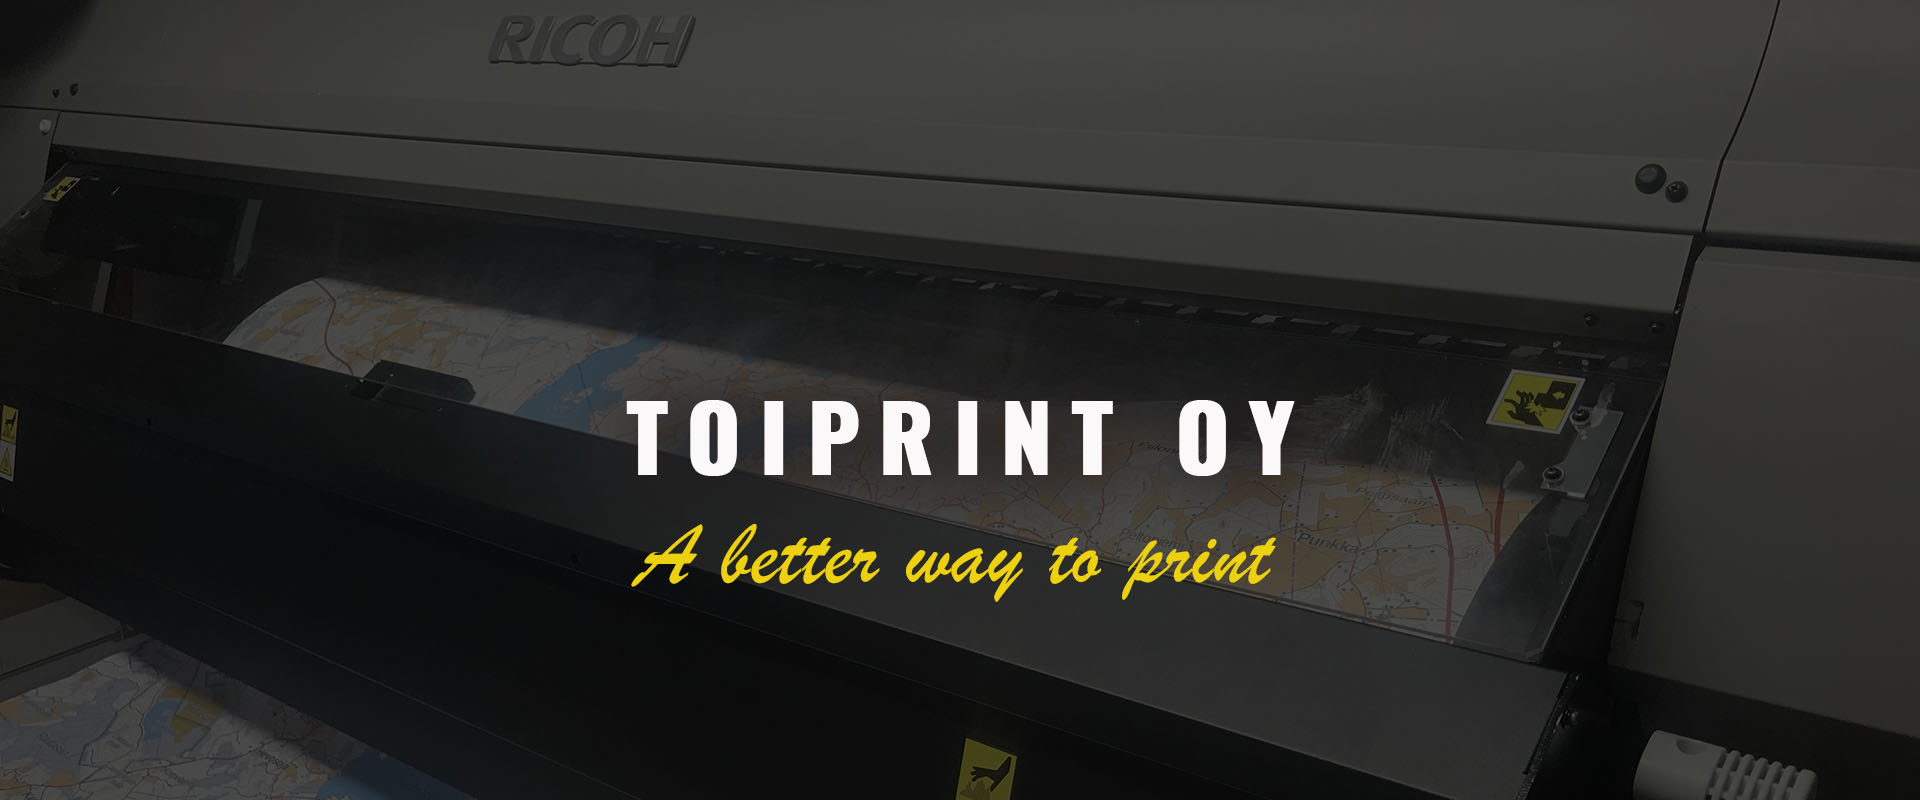 Toiprint Oy • A better way to print | Tampere